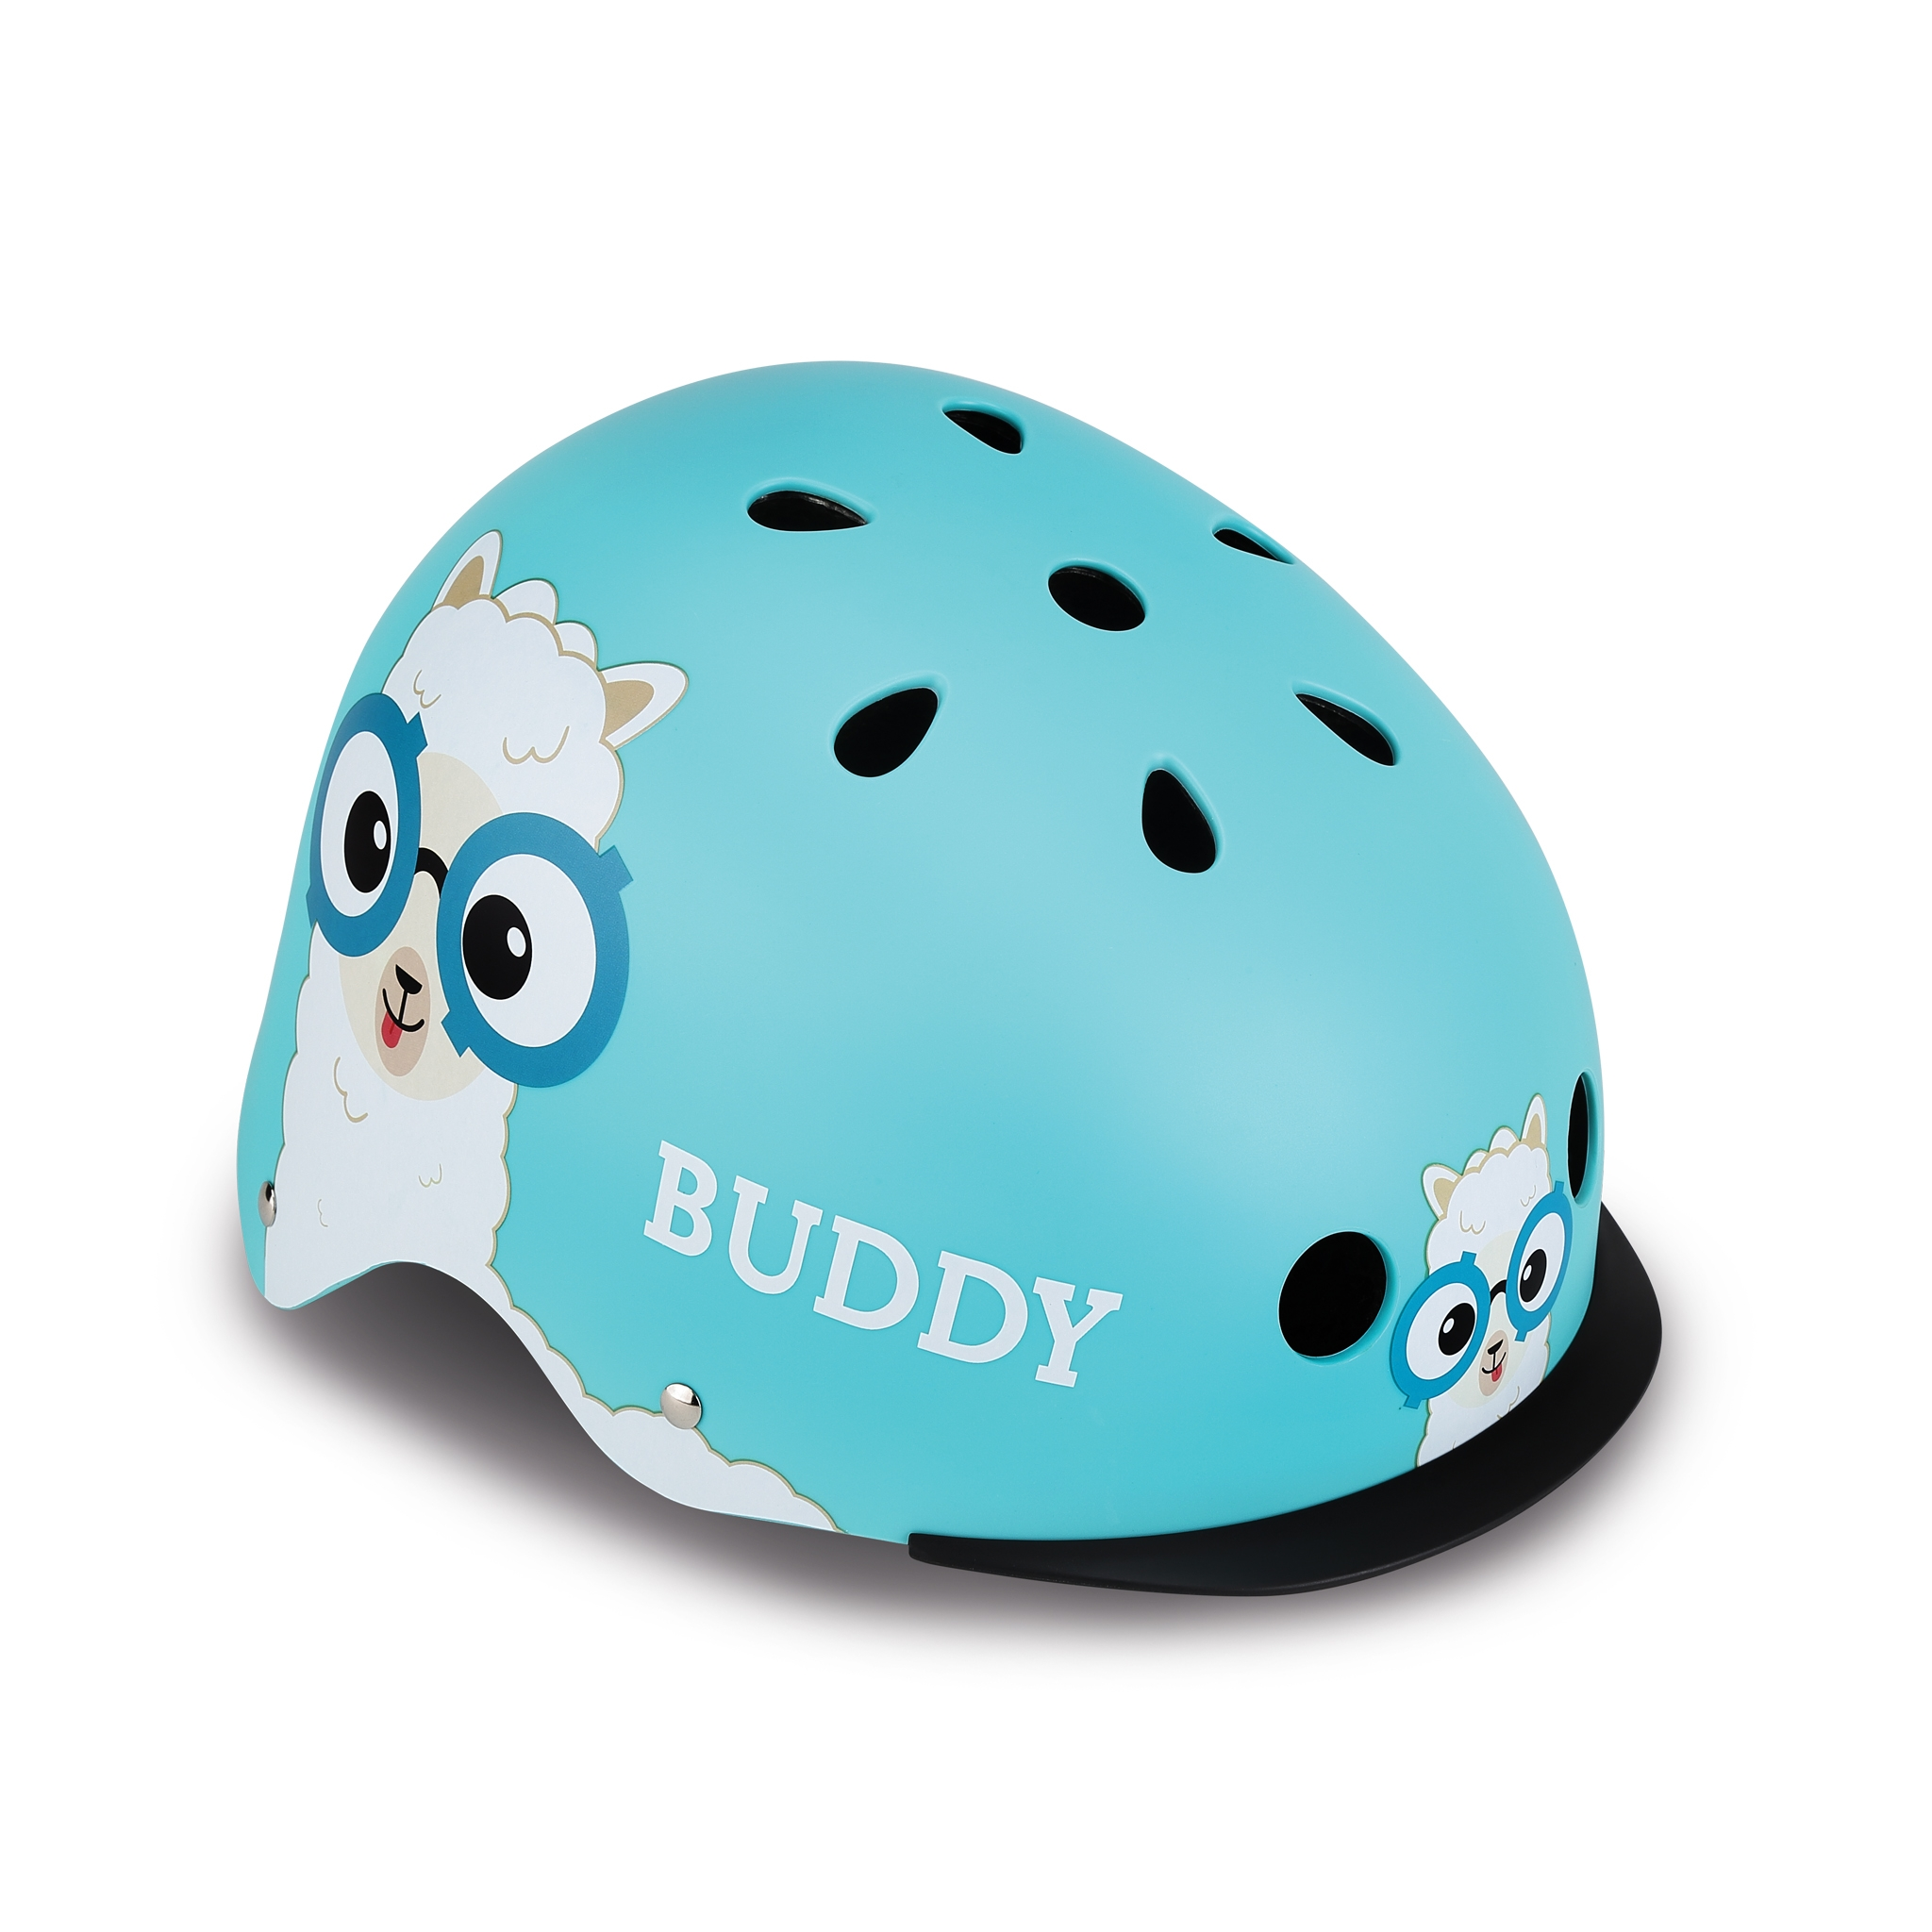 ELITE-helmets-scooter-helmets-for-kids-in-mold-polycarbonate-outer-shell-blue 0